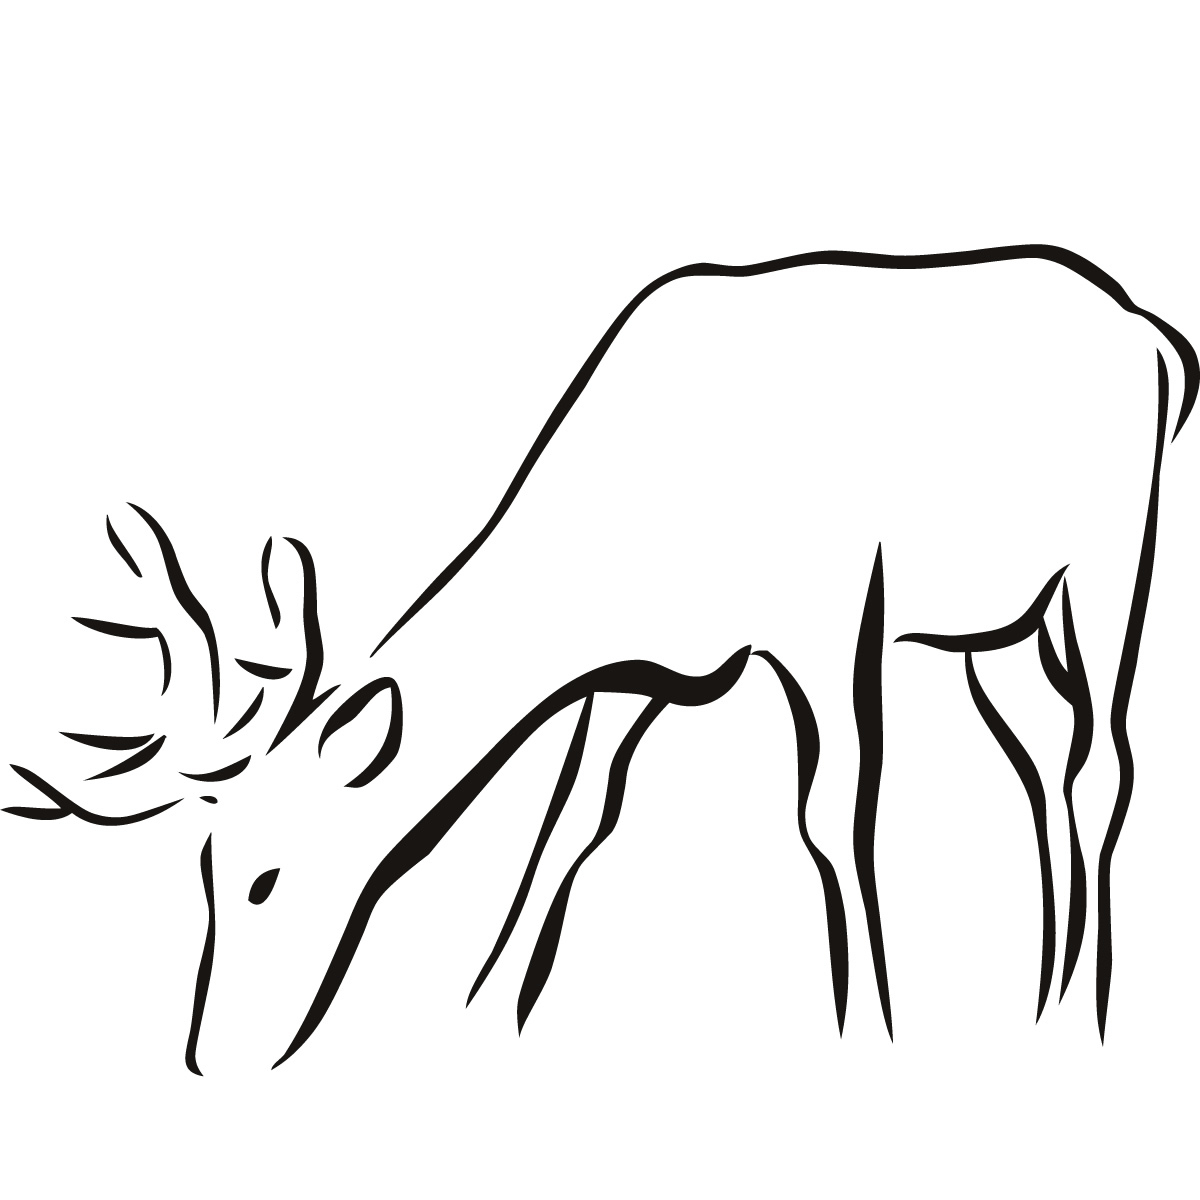 Free Animal Outlines, Download Free Clip Art, Free Clip Art On - Free Printable Arty Animal Outlines